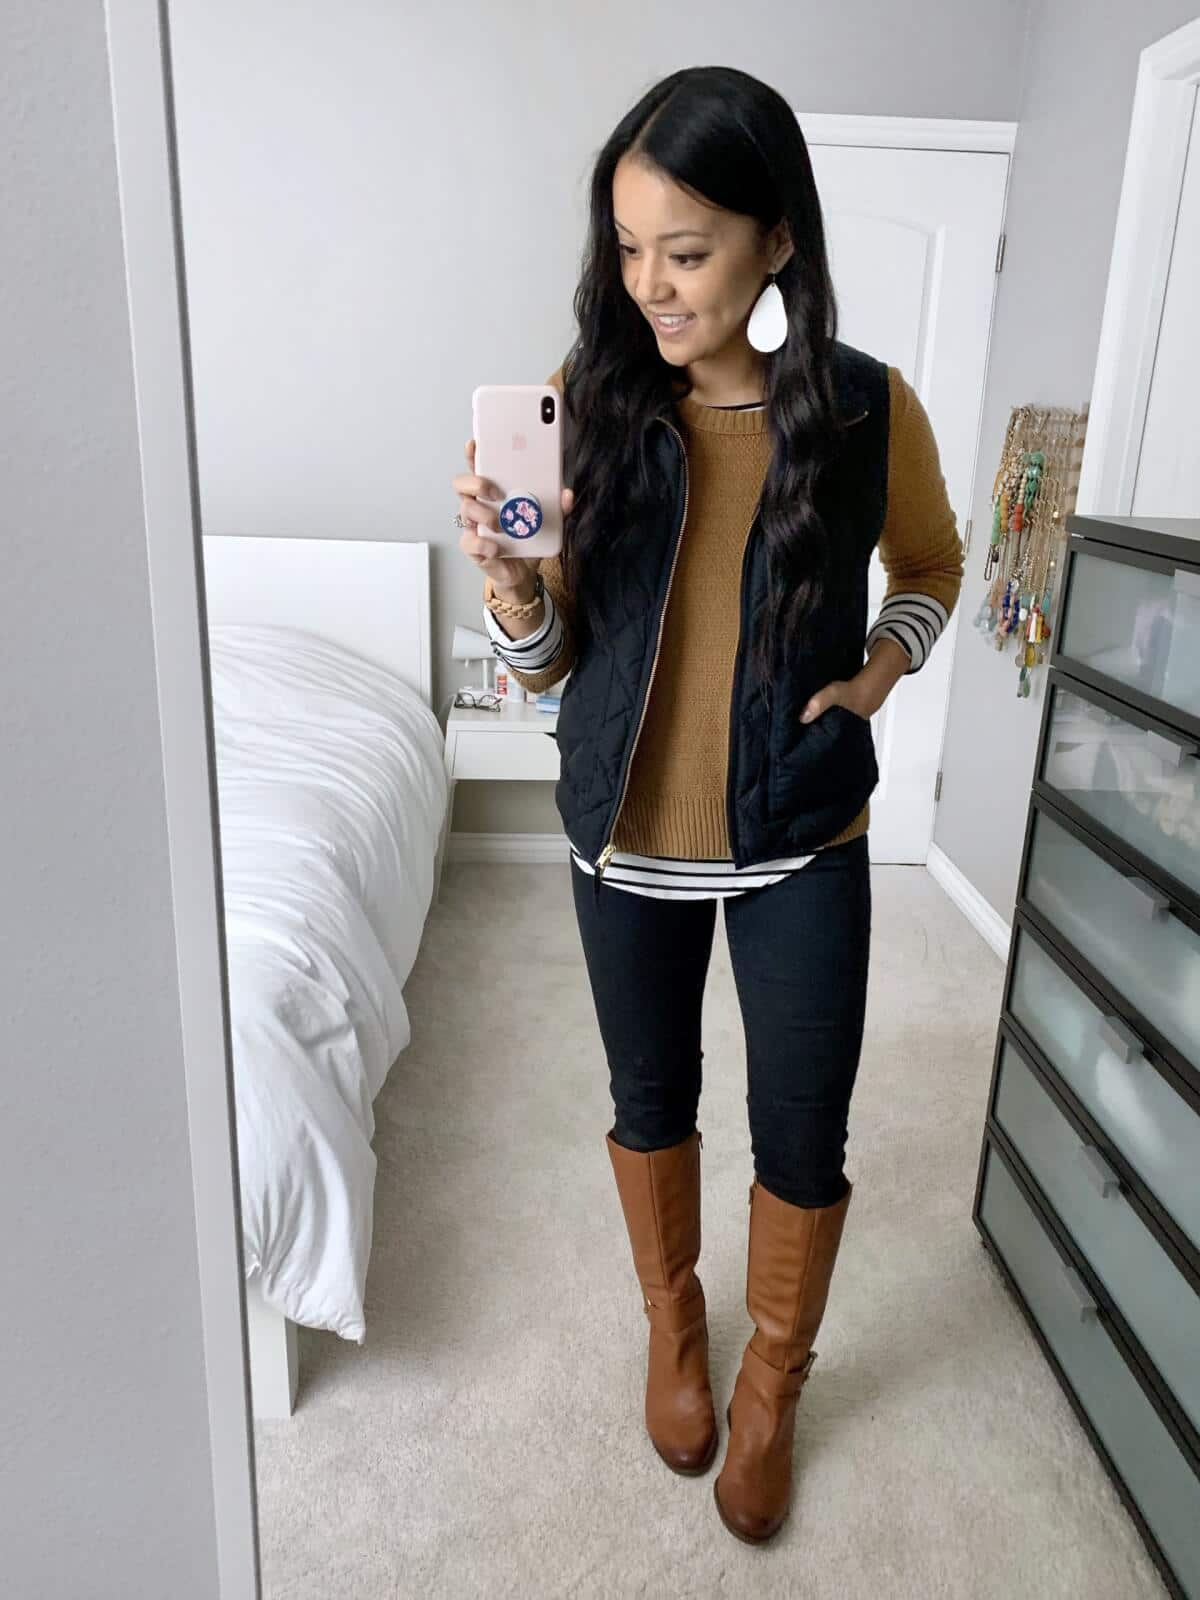 Winter Leggings Outfit: long sleeve striped tee + camel sweater + black quilted vest + black leggings + cognac leather boots + white leather earrings